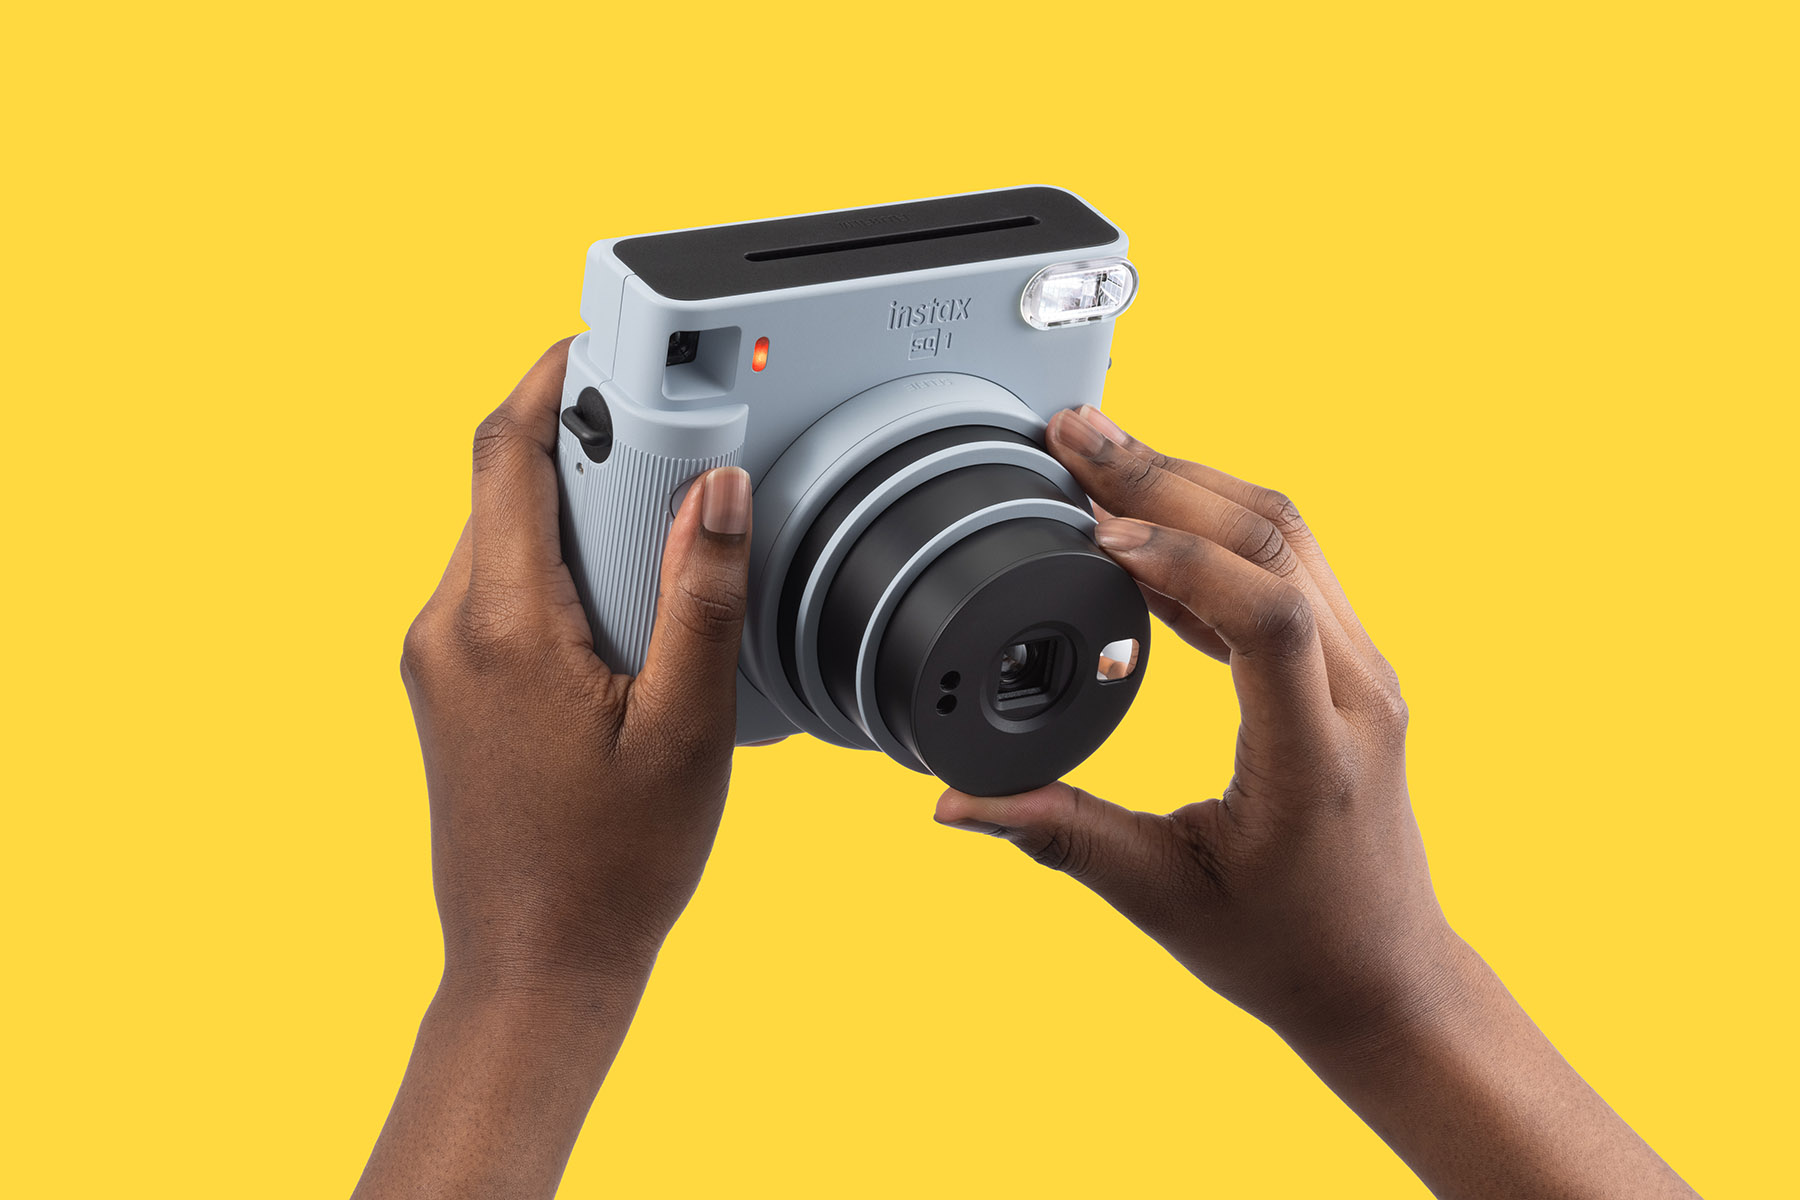 Instax SQ1 with model holding on yellow background